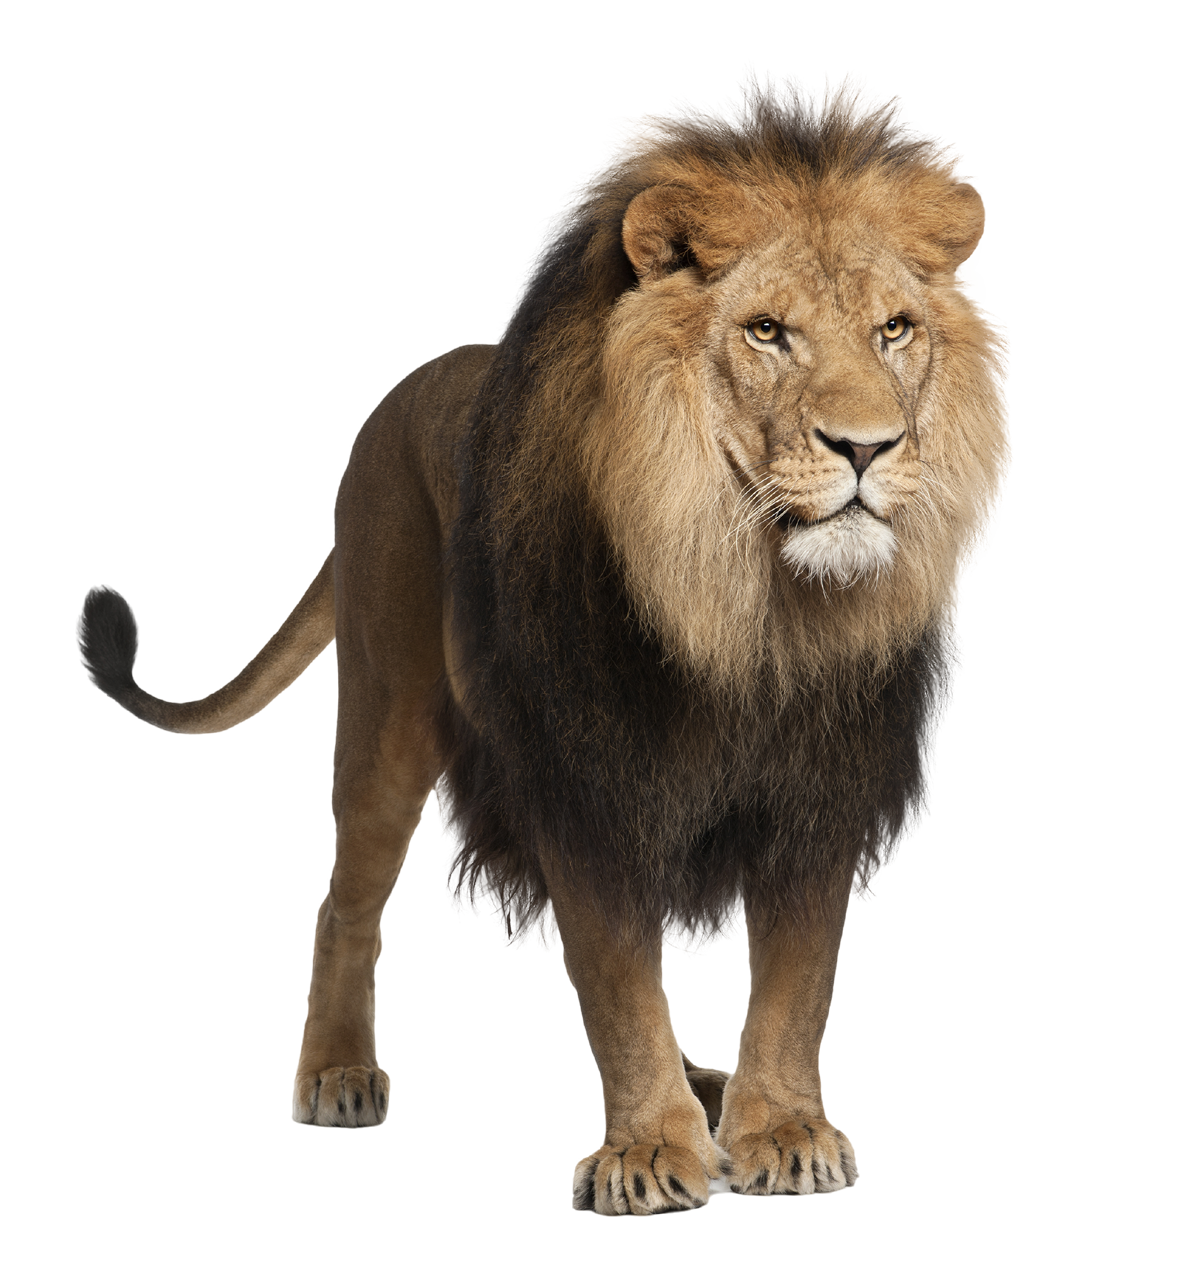 Png animals hd. Lion images and clipart